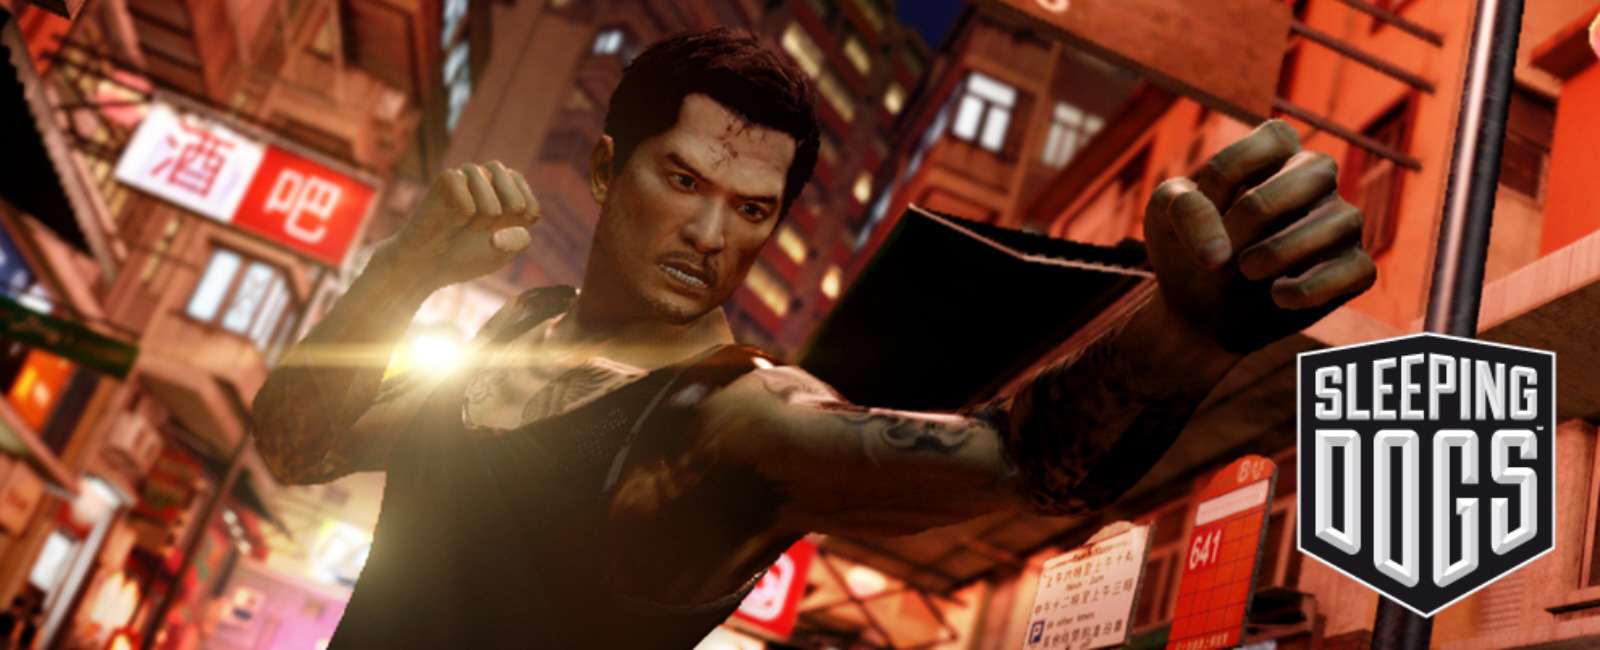 Sleeping Dogs HD & Widescreen Wallpaper 0.847354123749148